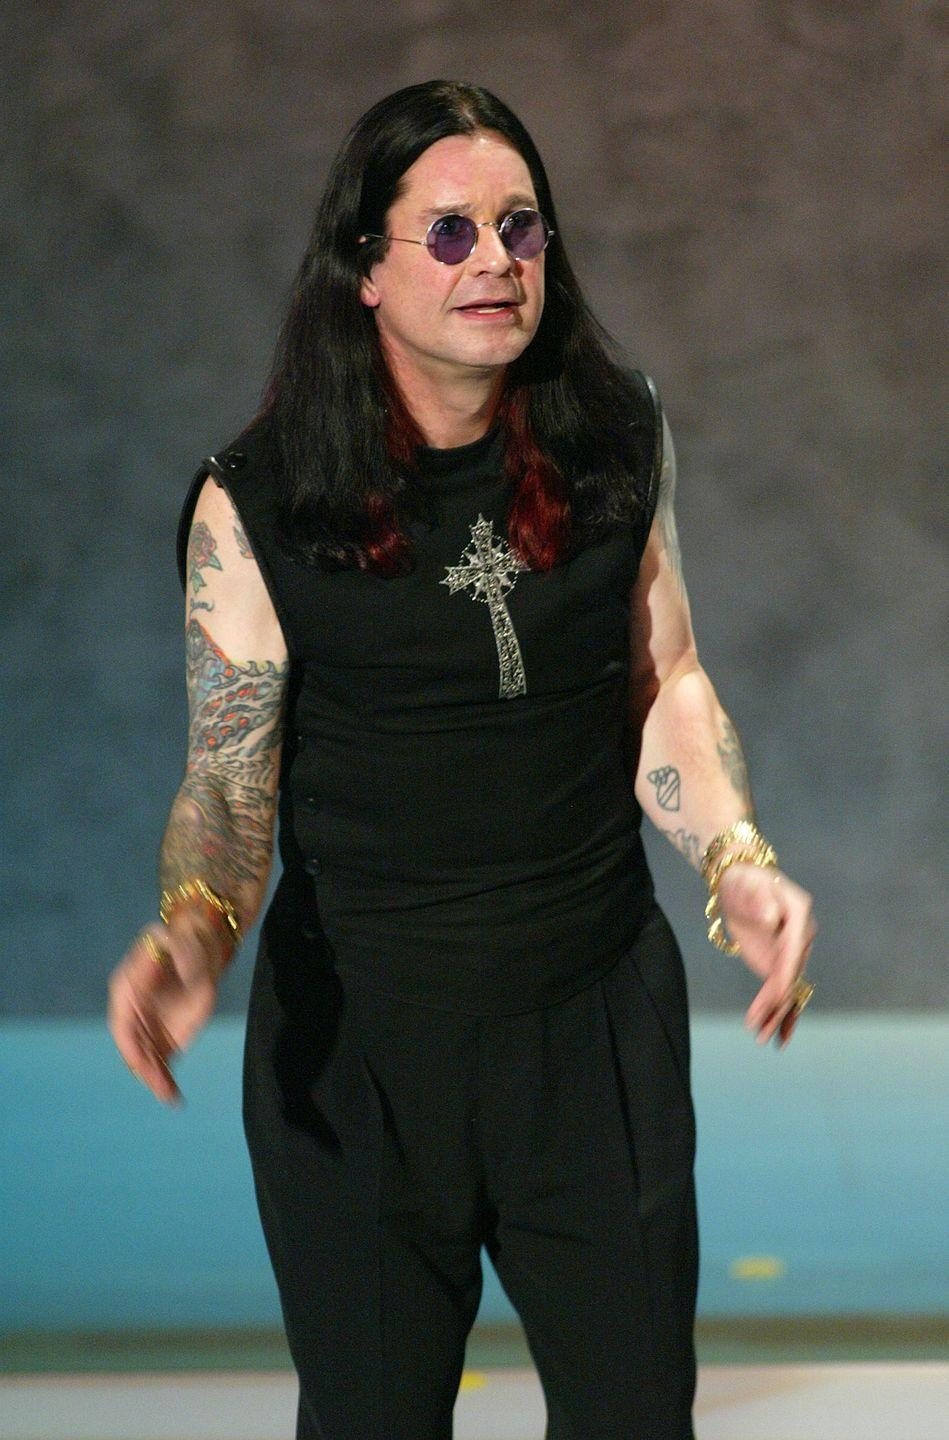 "<p>Osbourne crashed an ATV in 2003. He fractured his collarbone, multiple ribs, and fell into a coma for a few days. He shared his story in his memoir <em><a href=""https://www.amazon.com/I-Am-Ozzy-Osbourne/dp/0446569909?tag=syn-yahoo-20&ascsubtag=%5Bartid%7C2141.g.36311064%5Bsrc%7Cyahoo-us"" rel=""nofollow noopener"" target=""_blank"" data-ylk=""slk:I Am Ozzy"" class=""link rapid-noclick-resp"">I Am Ozzy</a>:</em> ""I didn't know where I was or how long I'd been there. I would drift in and out of consciousness. Other times there would be a white light shining through the darkness, but no f*cking angels, no one blowing trumpets, and no man in a white beard.""</p>"